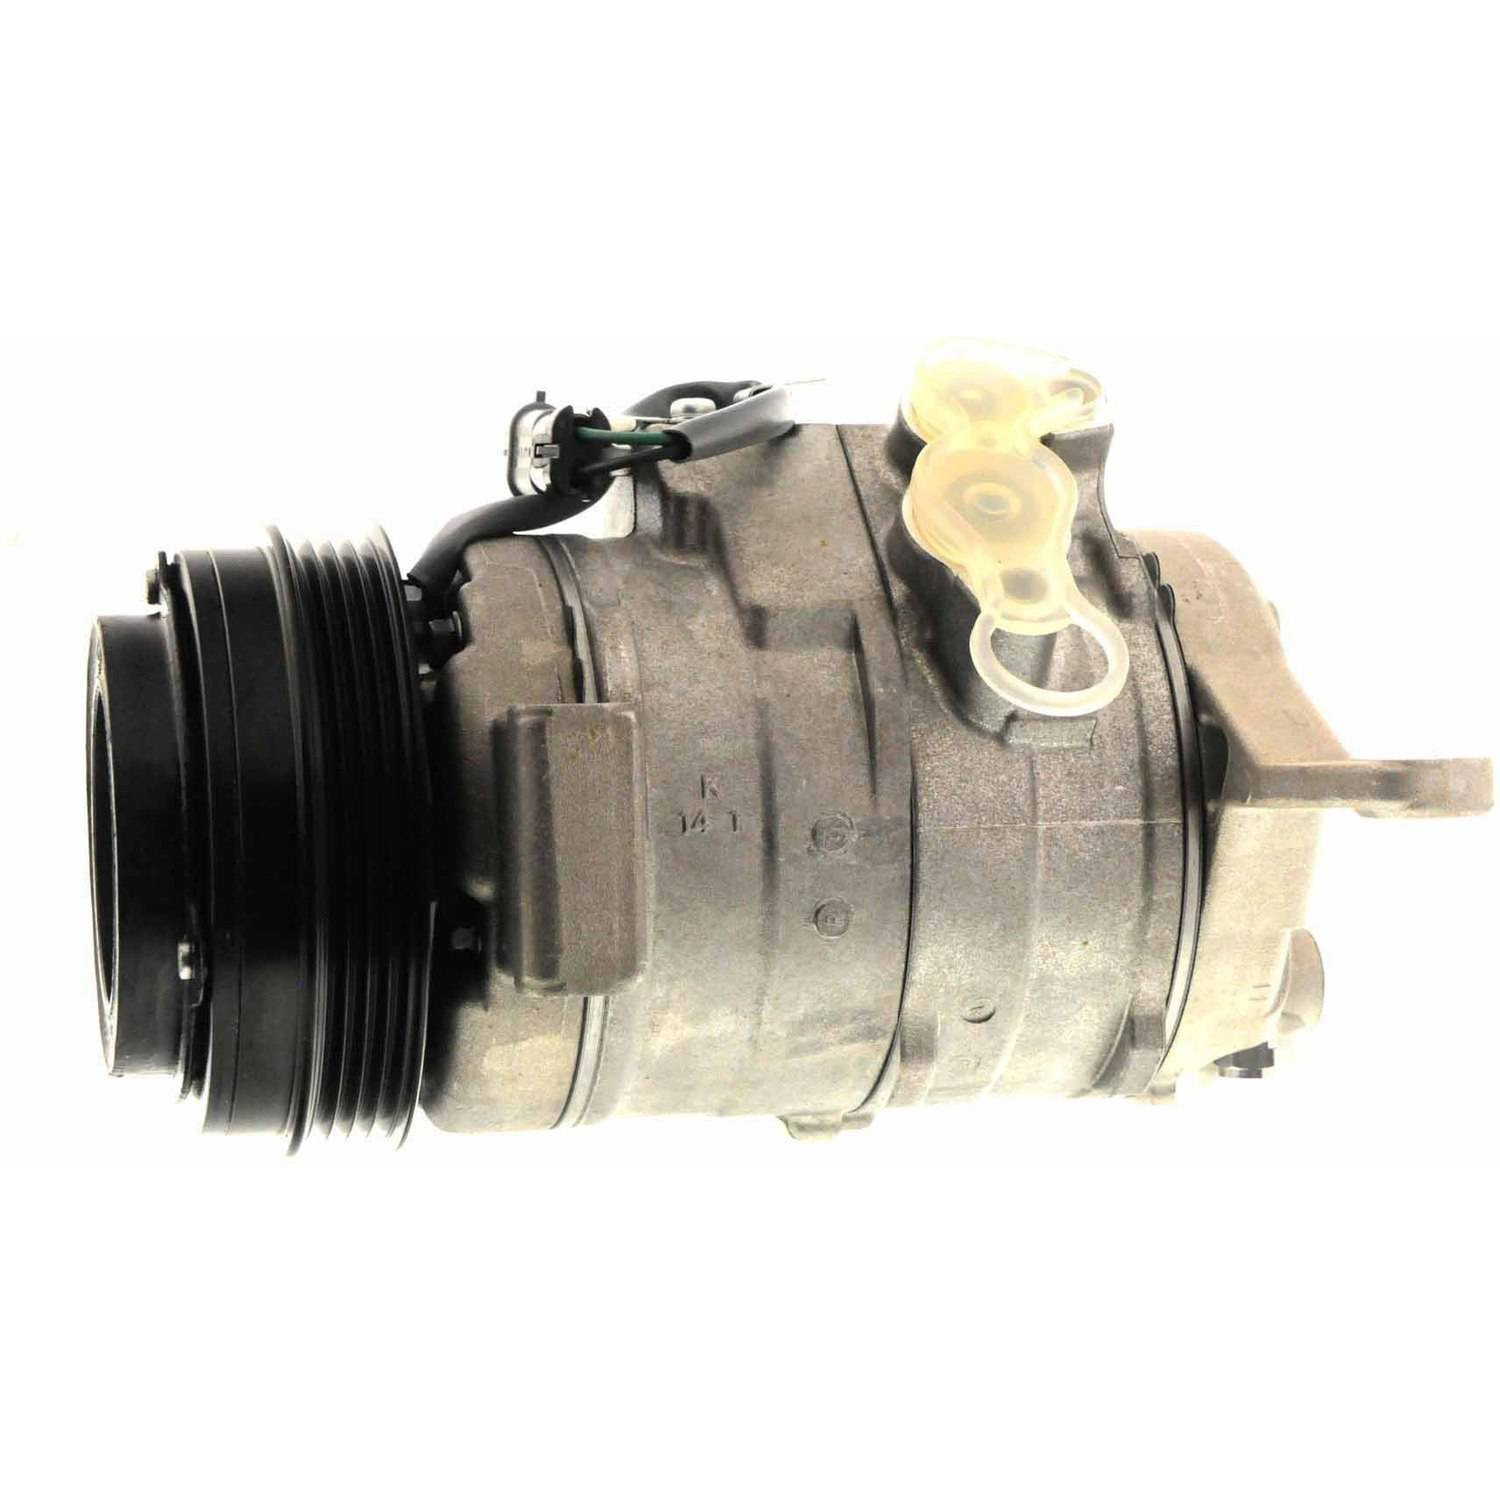 AC Delco 15-21671 A/C Compressor, With clutch New